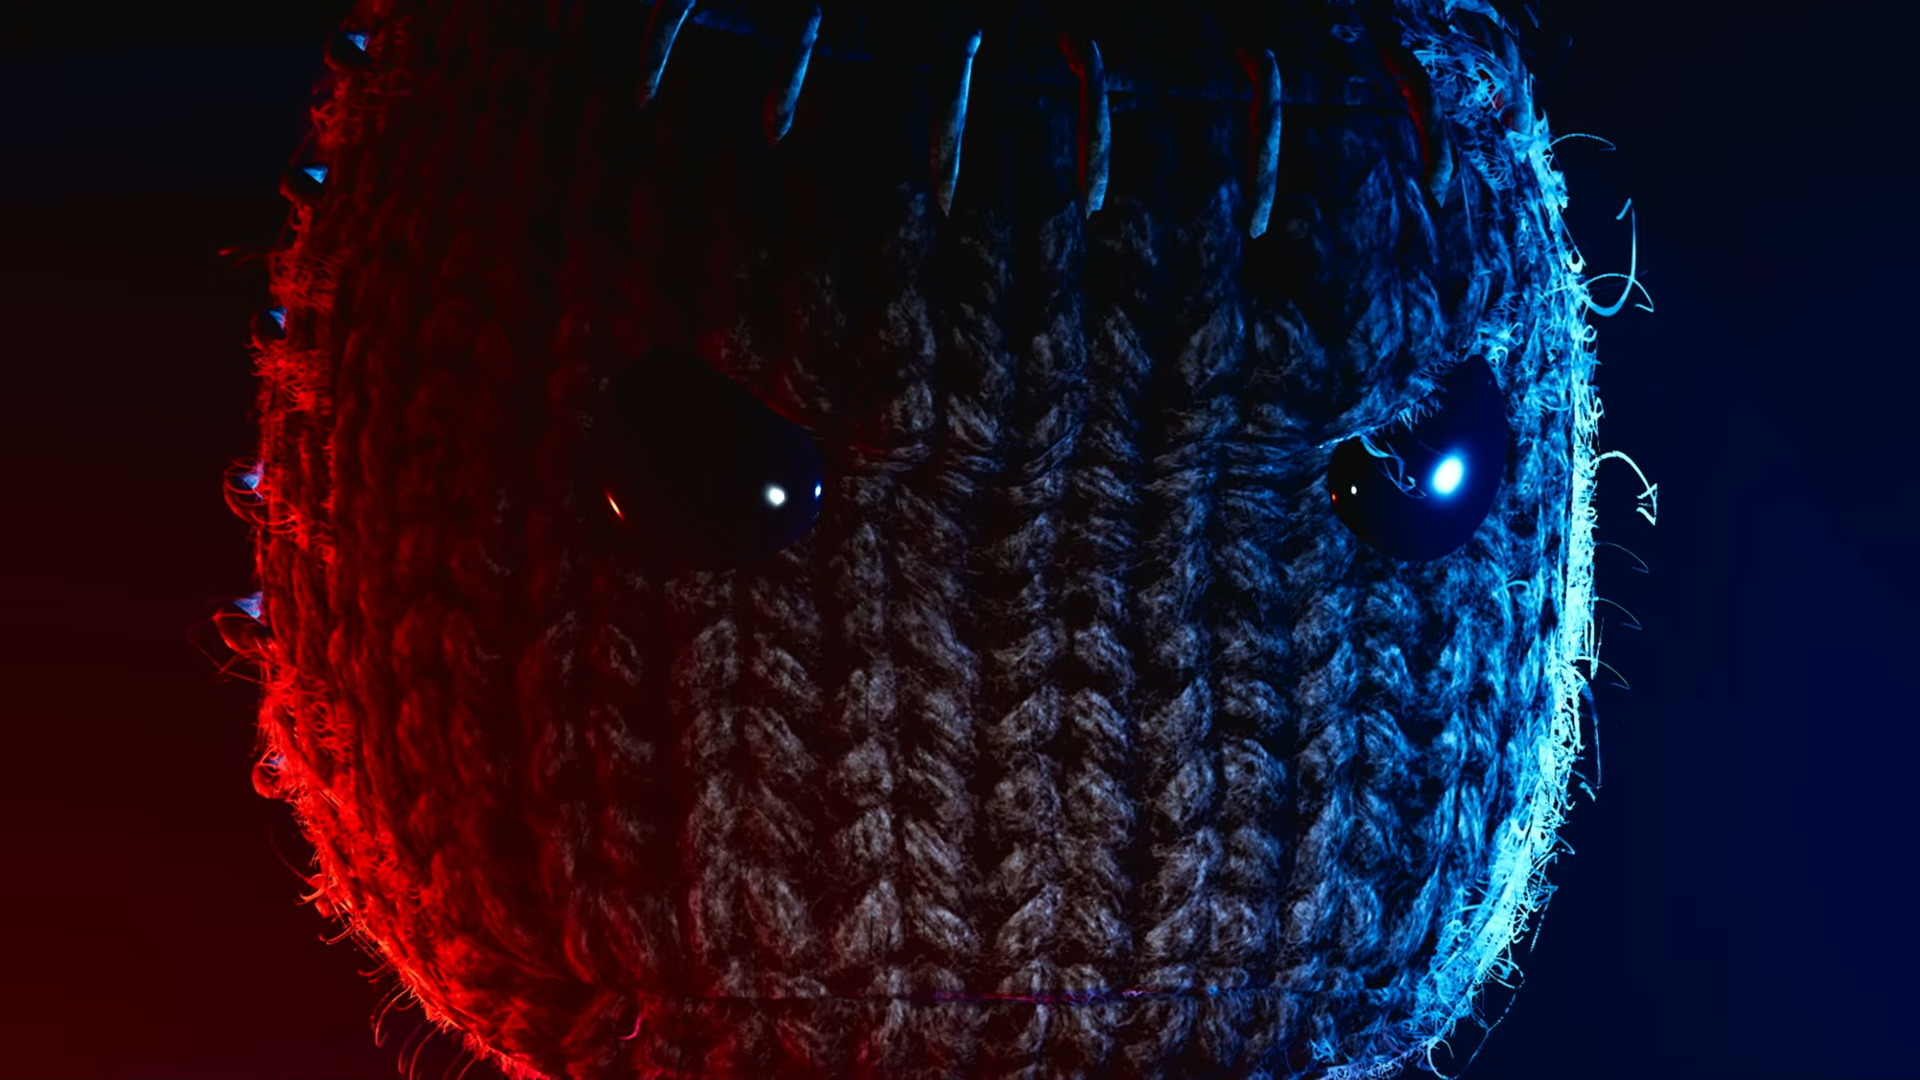 Sackboy: A Big Adventure Doesn't Rely On User Generated Content In Franchise Spin-Off